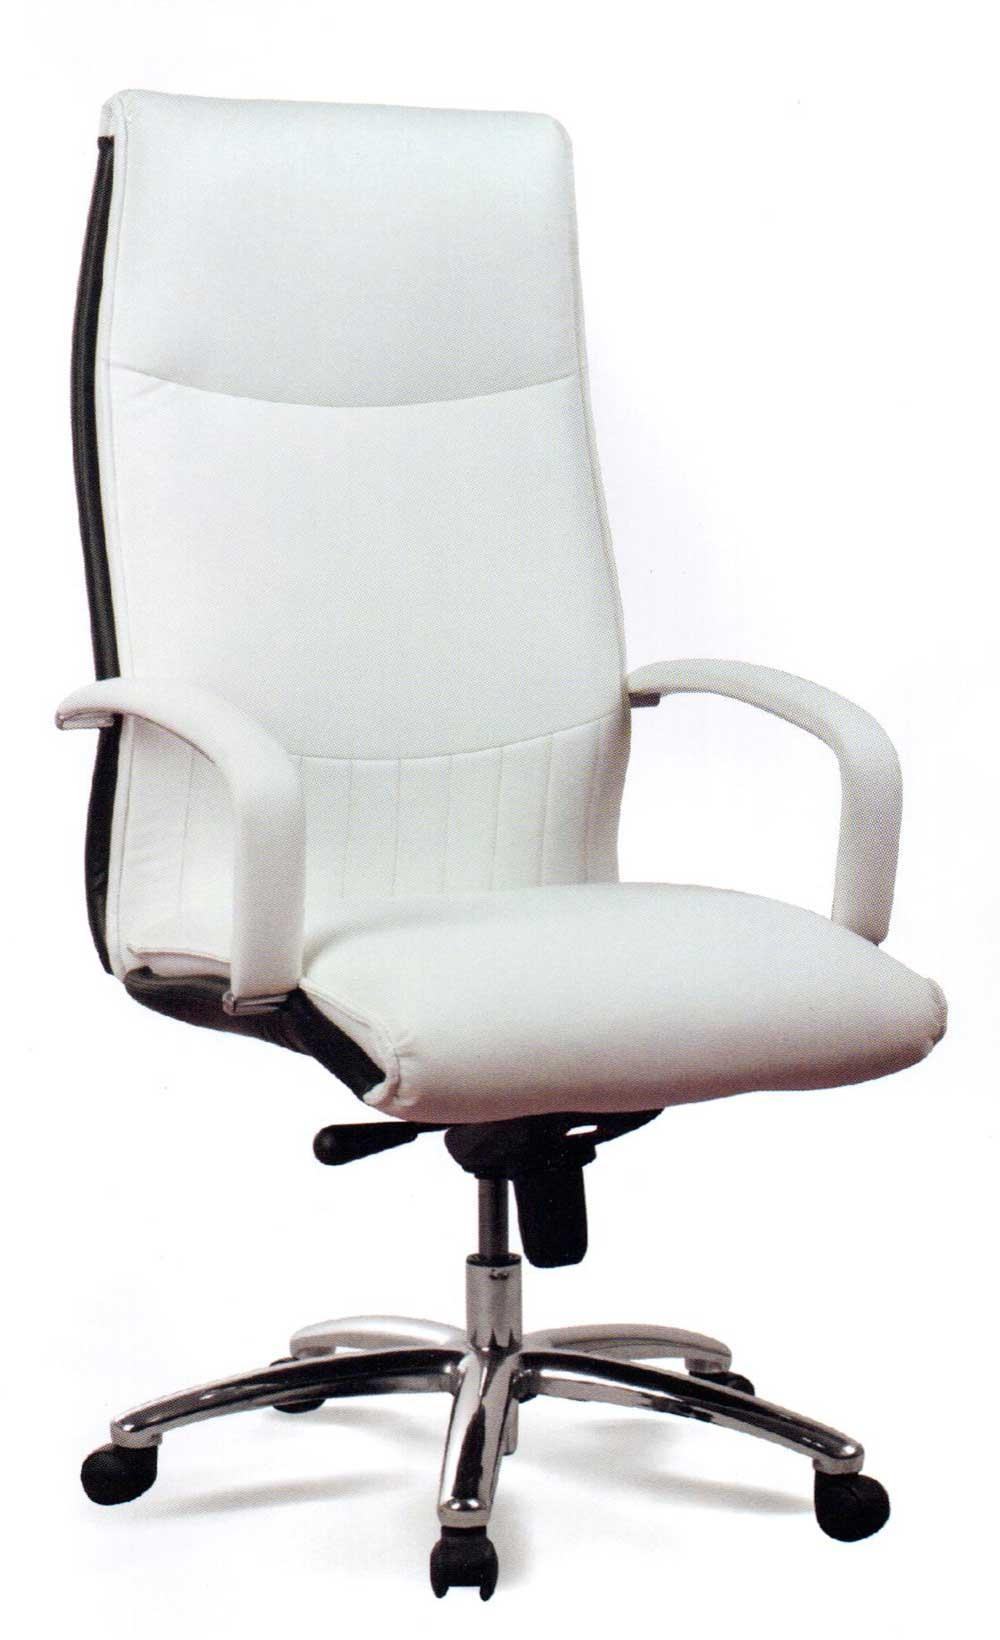 Sofa White Ergonomic Office Chairs | Winafrica For Sofa Desk Chairs (Image 15 of 20)